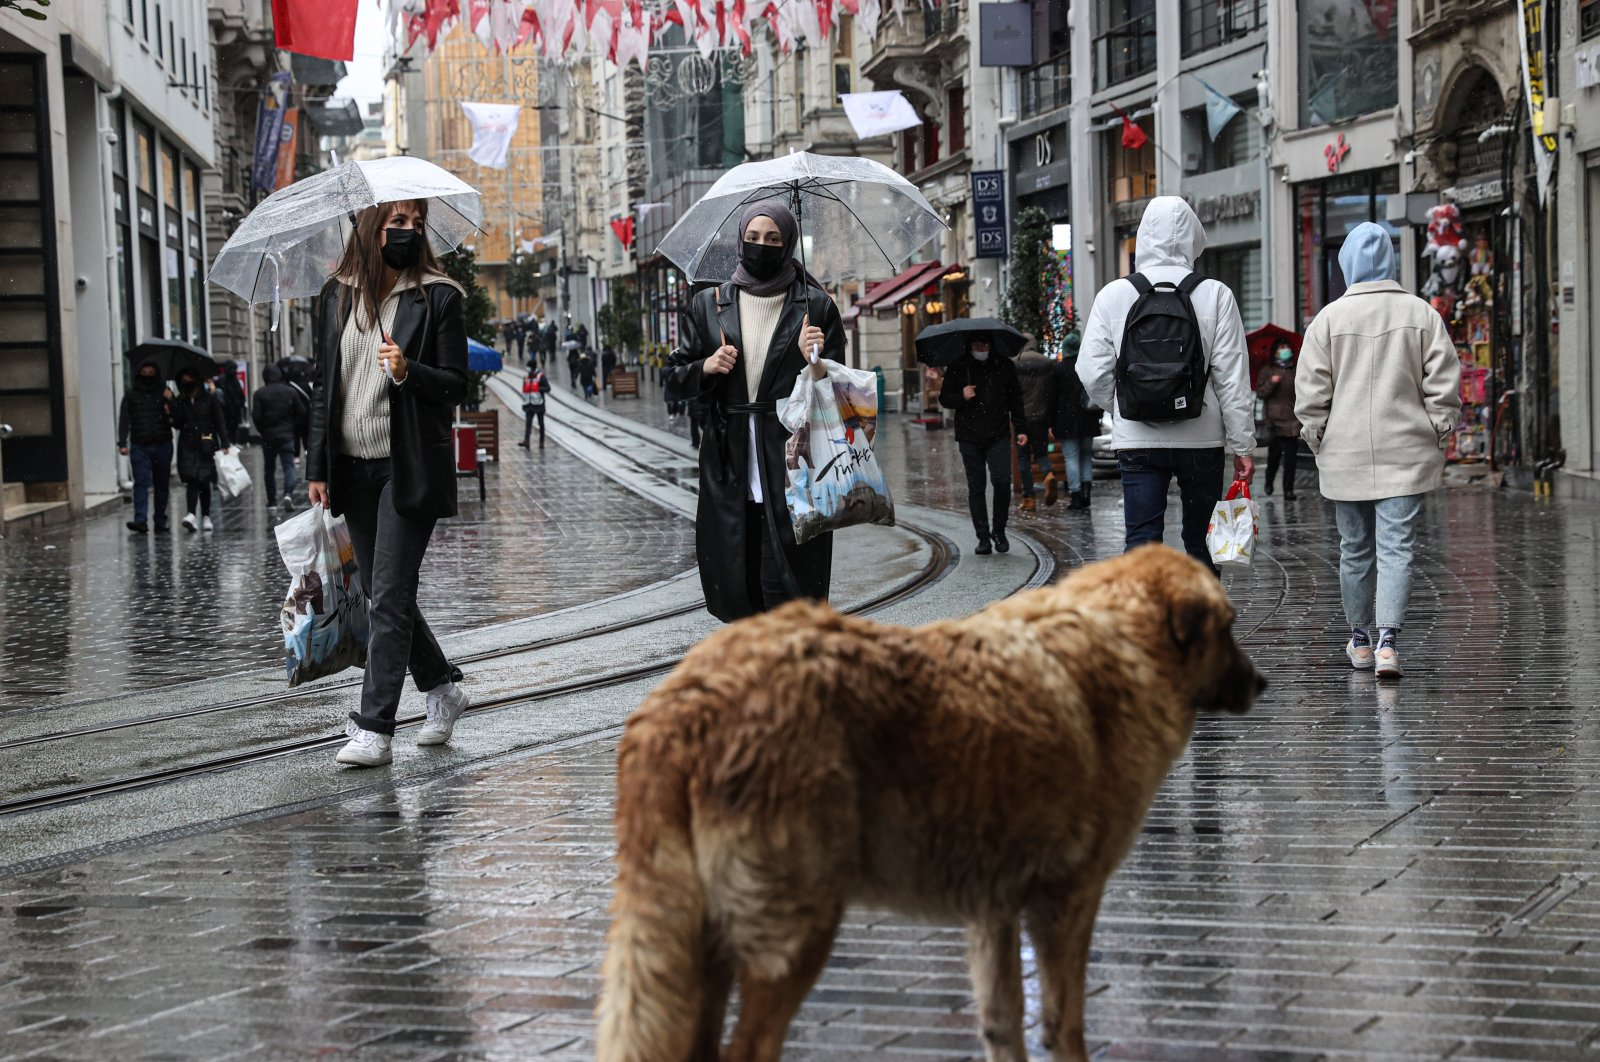 People tour the Istiklal street with umbrellas on a rainy day in Taksim district of Istanbul, Turkey, April 8, 2020. (AA)